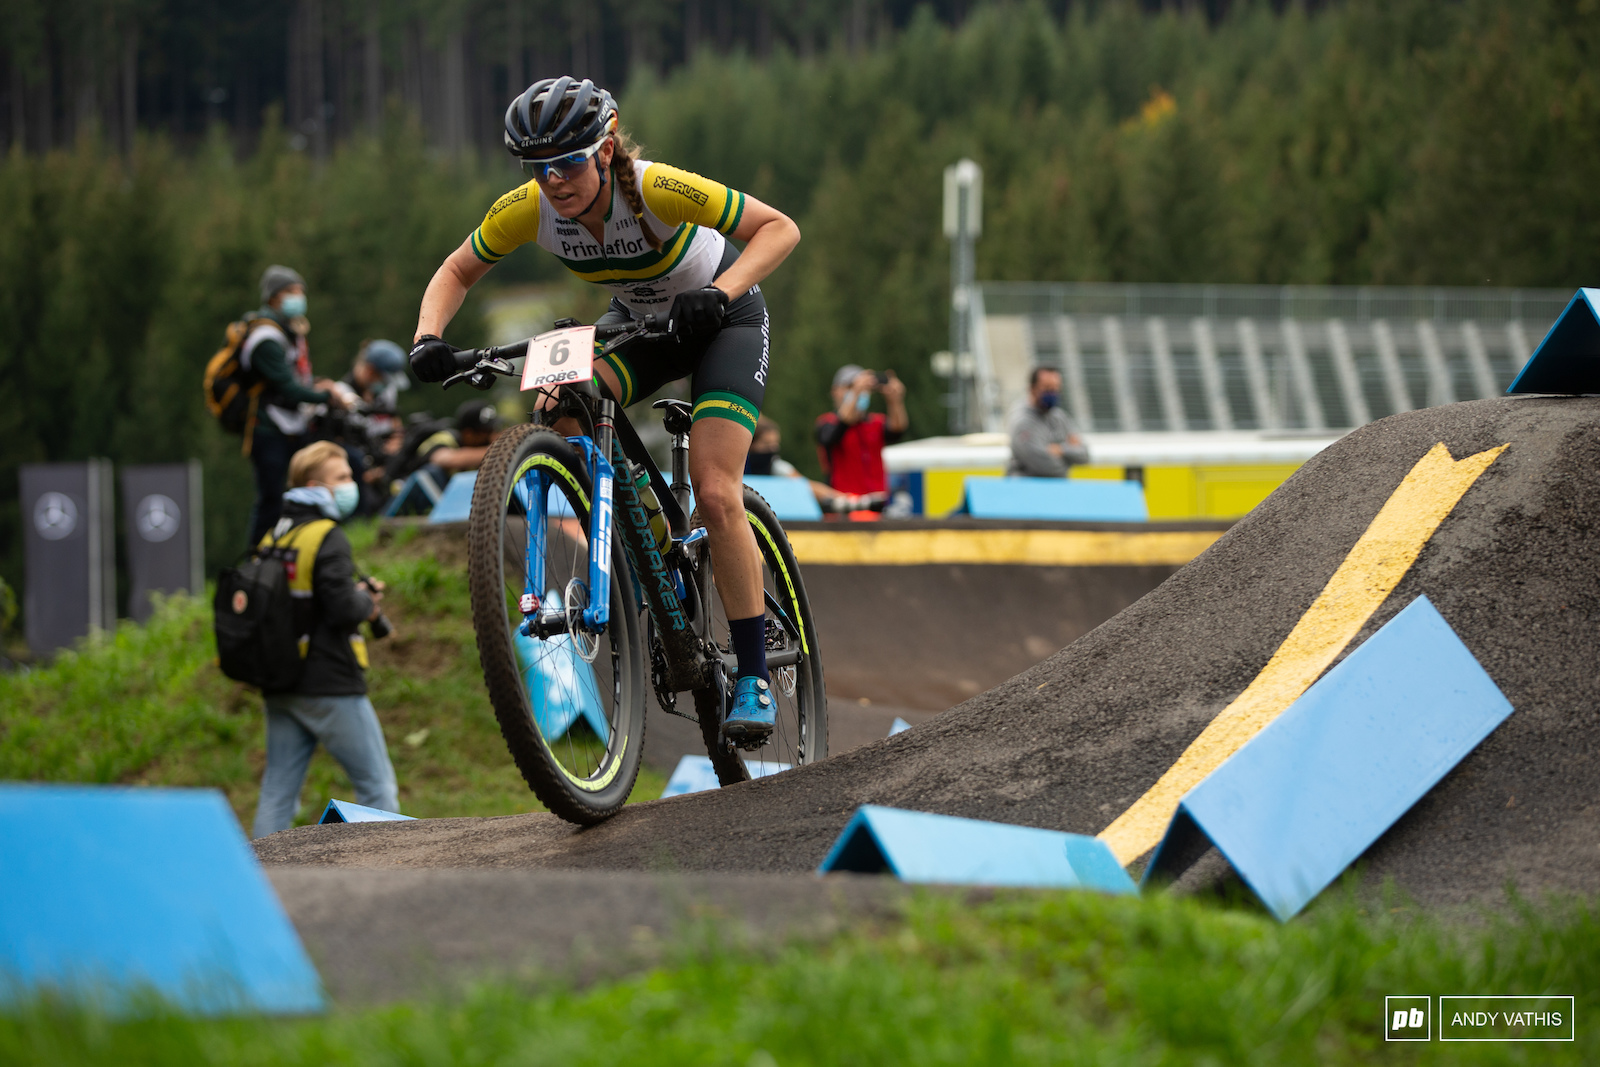 Strong ride today by Rebecca Mcconnell sliding onto the podium in fourth.